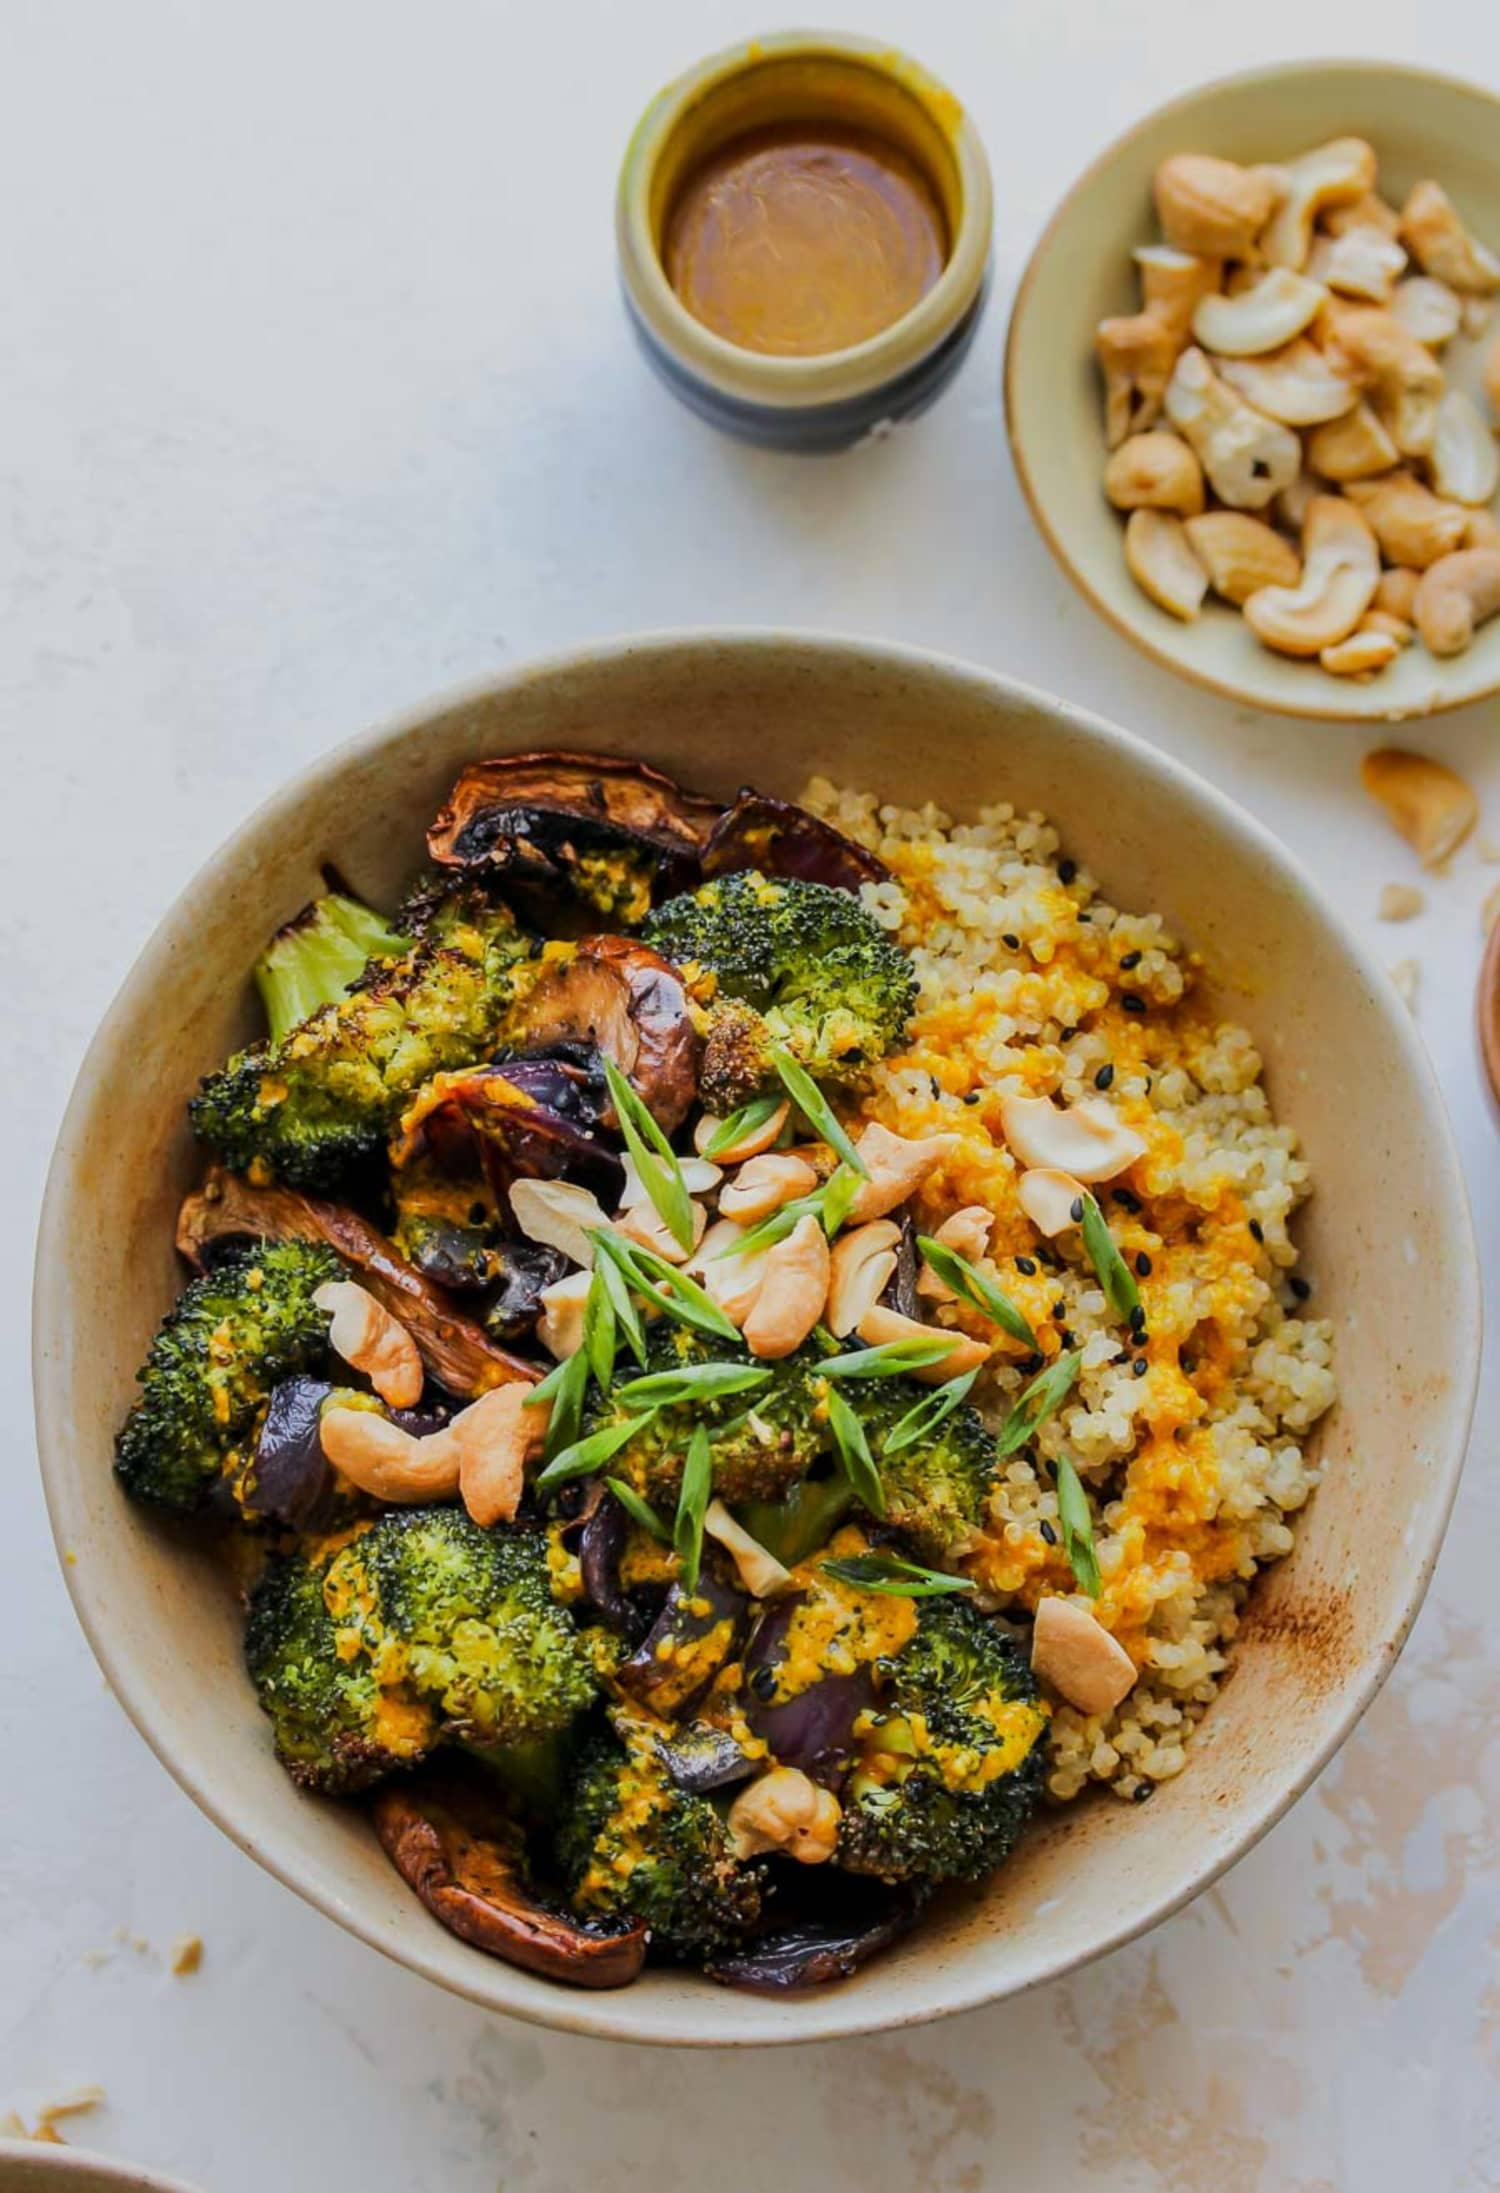 This Quinoa Broccoli Bowl Is Our New Lunch Crush